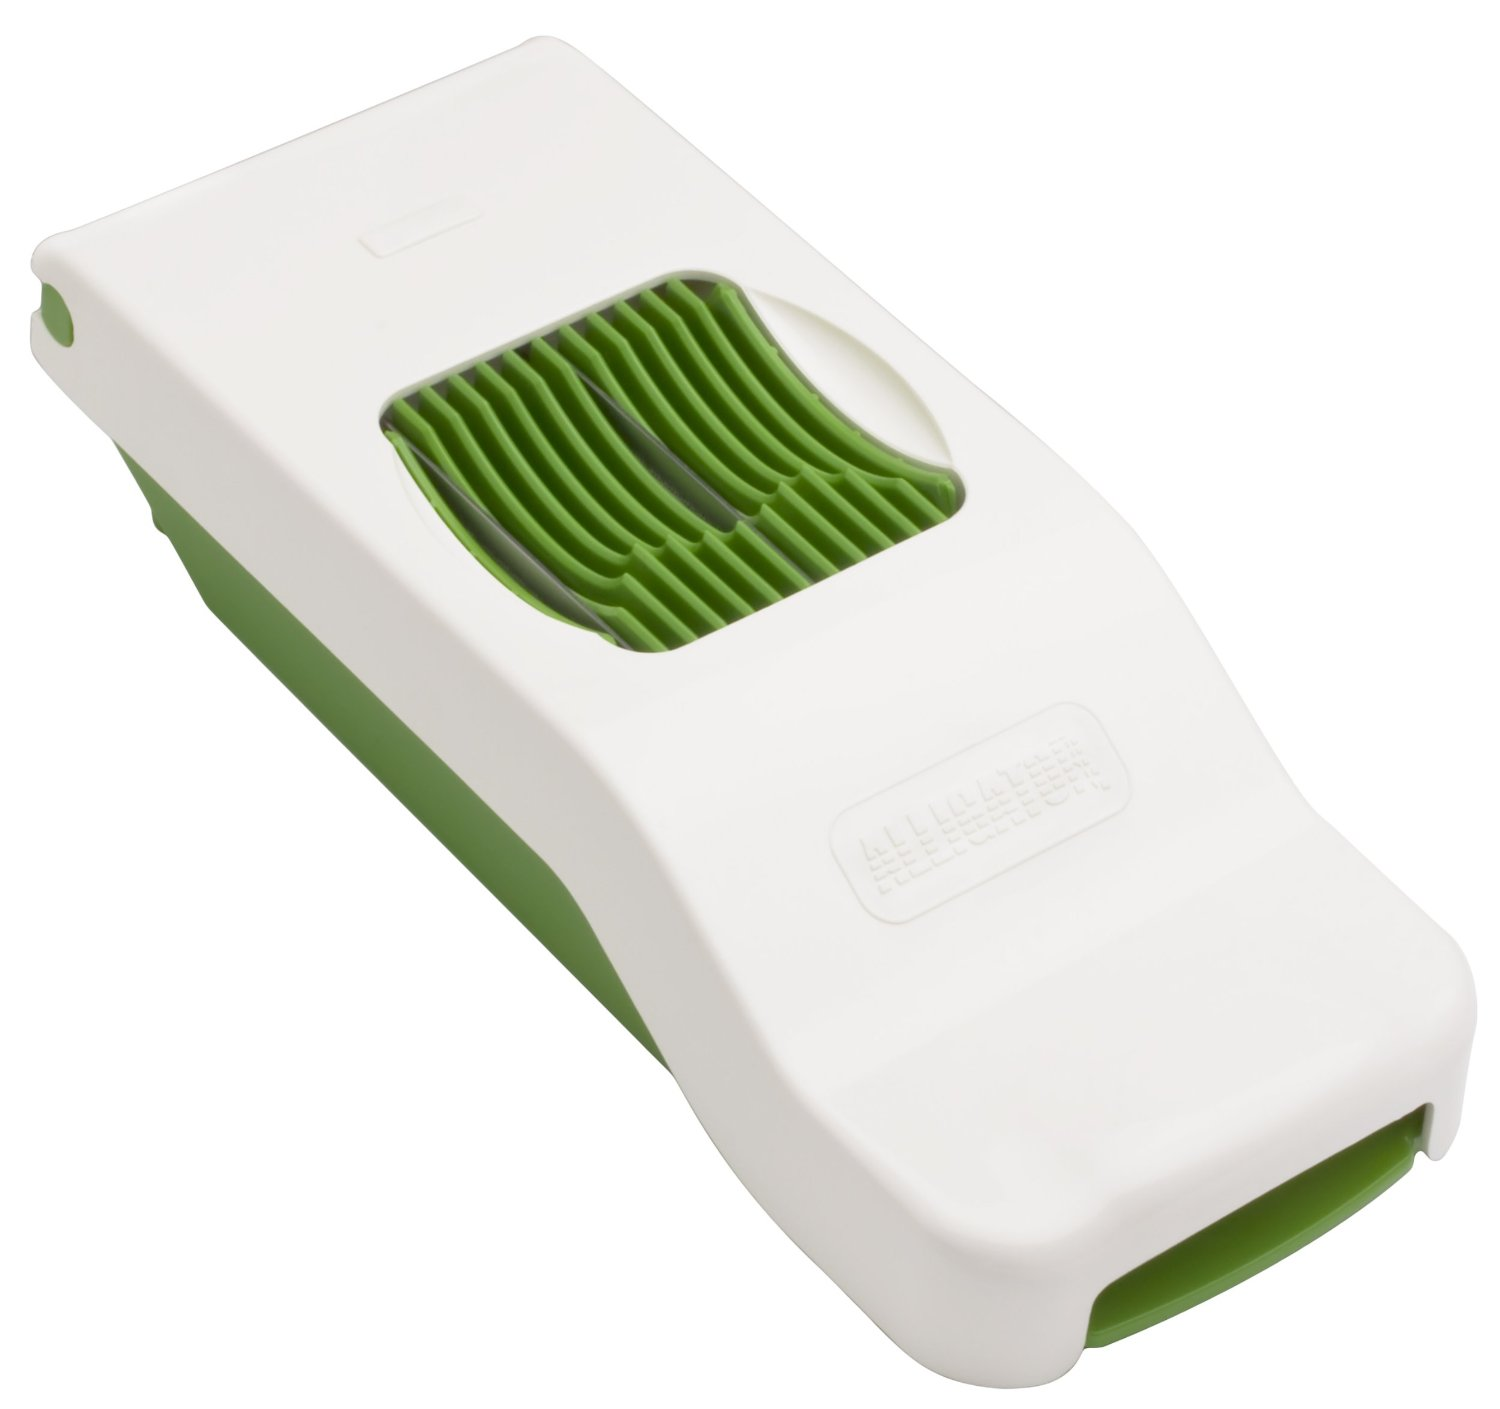 Green and White Alligator Slicer